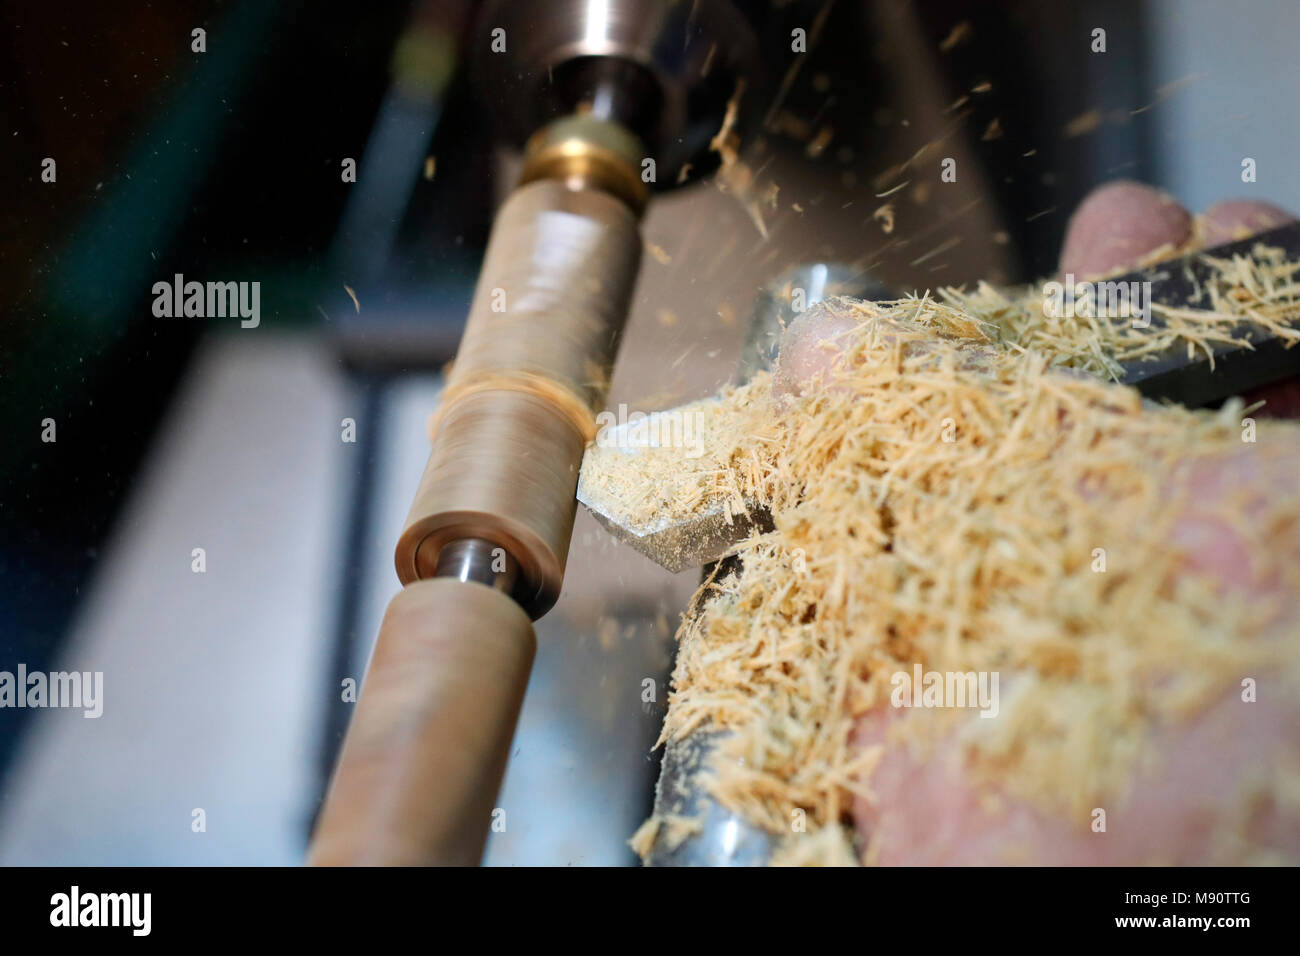 Man working on a wood lathe. - Stock Image